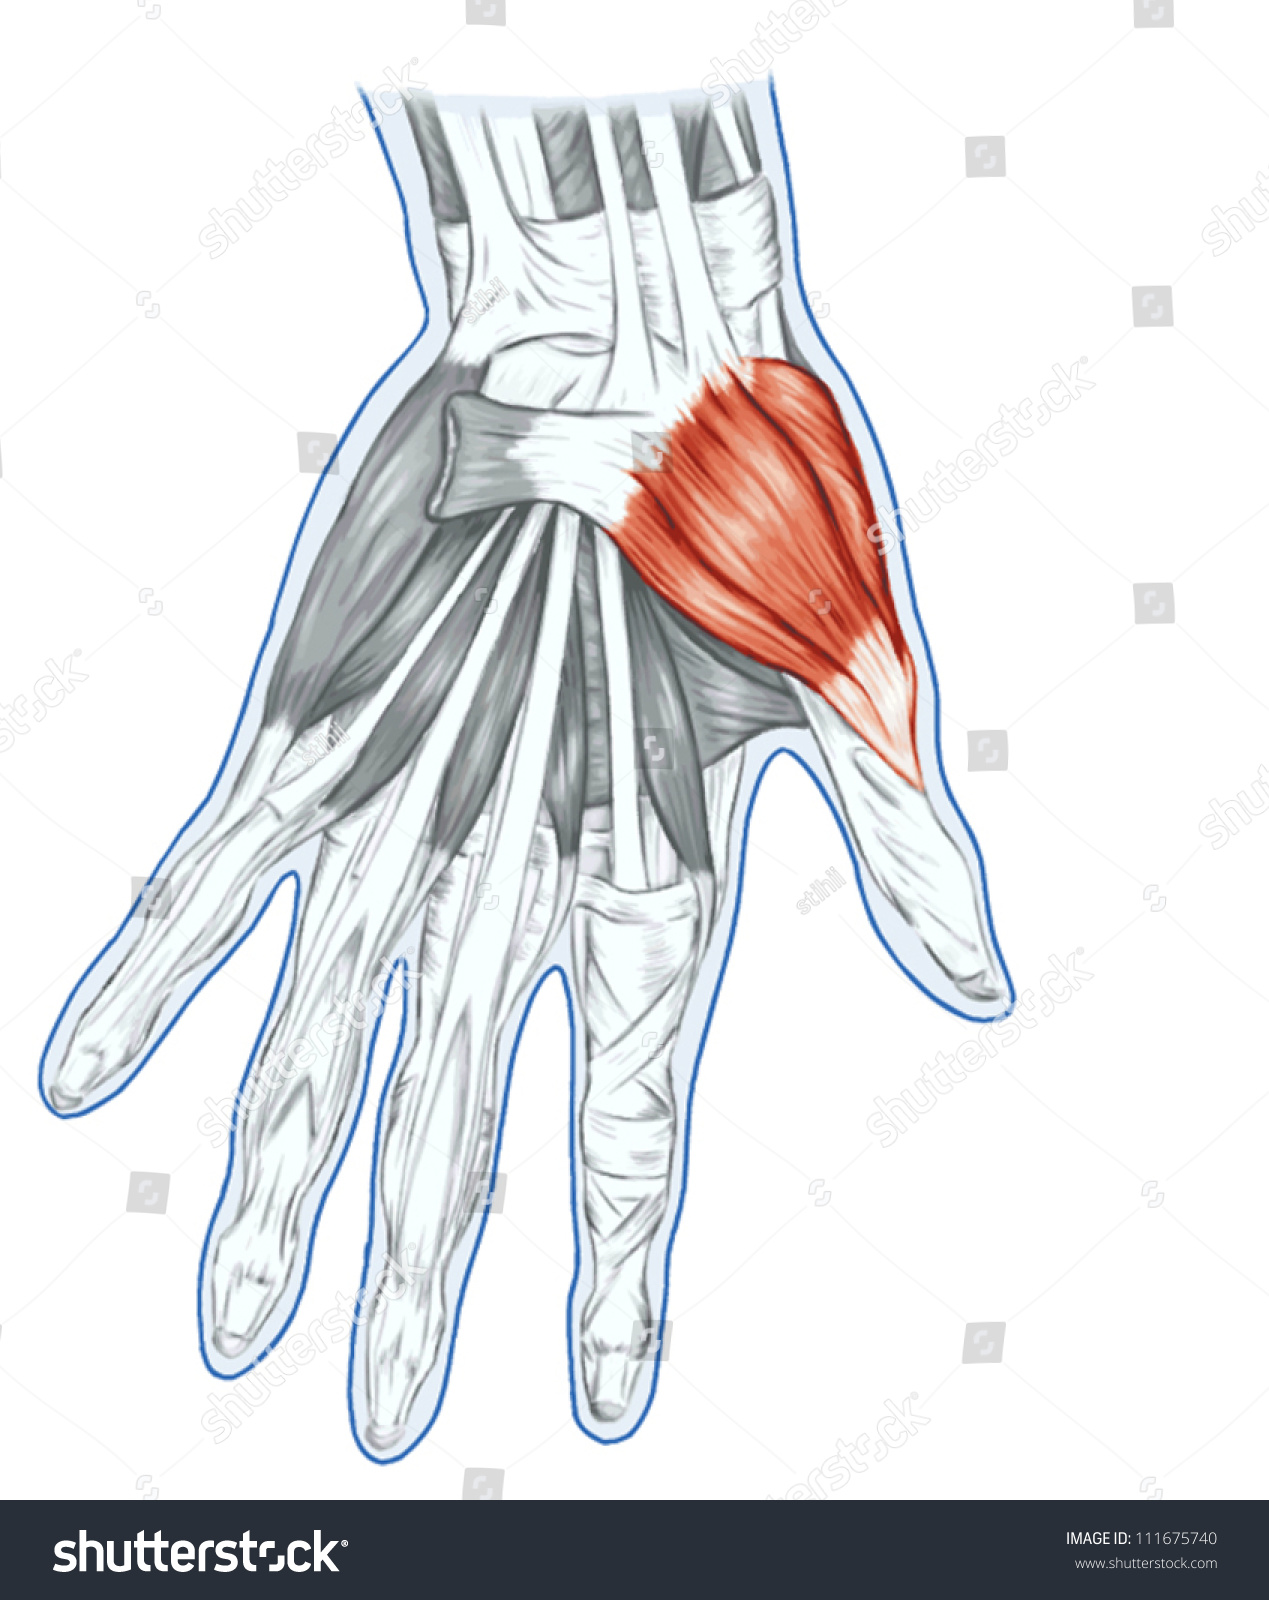 Anatomy Muscular System Hand Palm Muscle Stock Vector 111675740